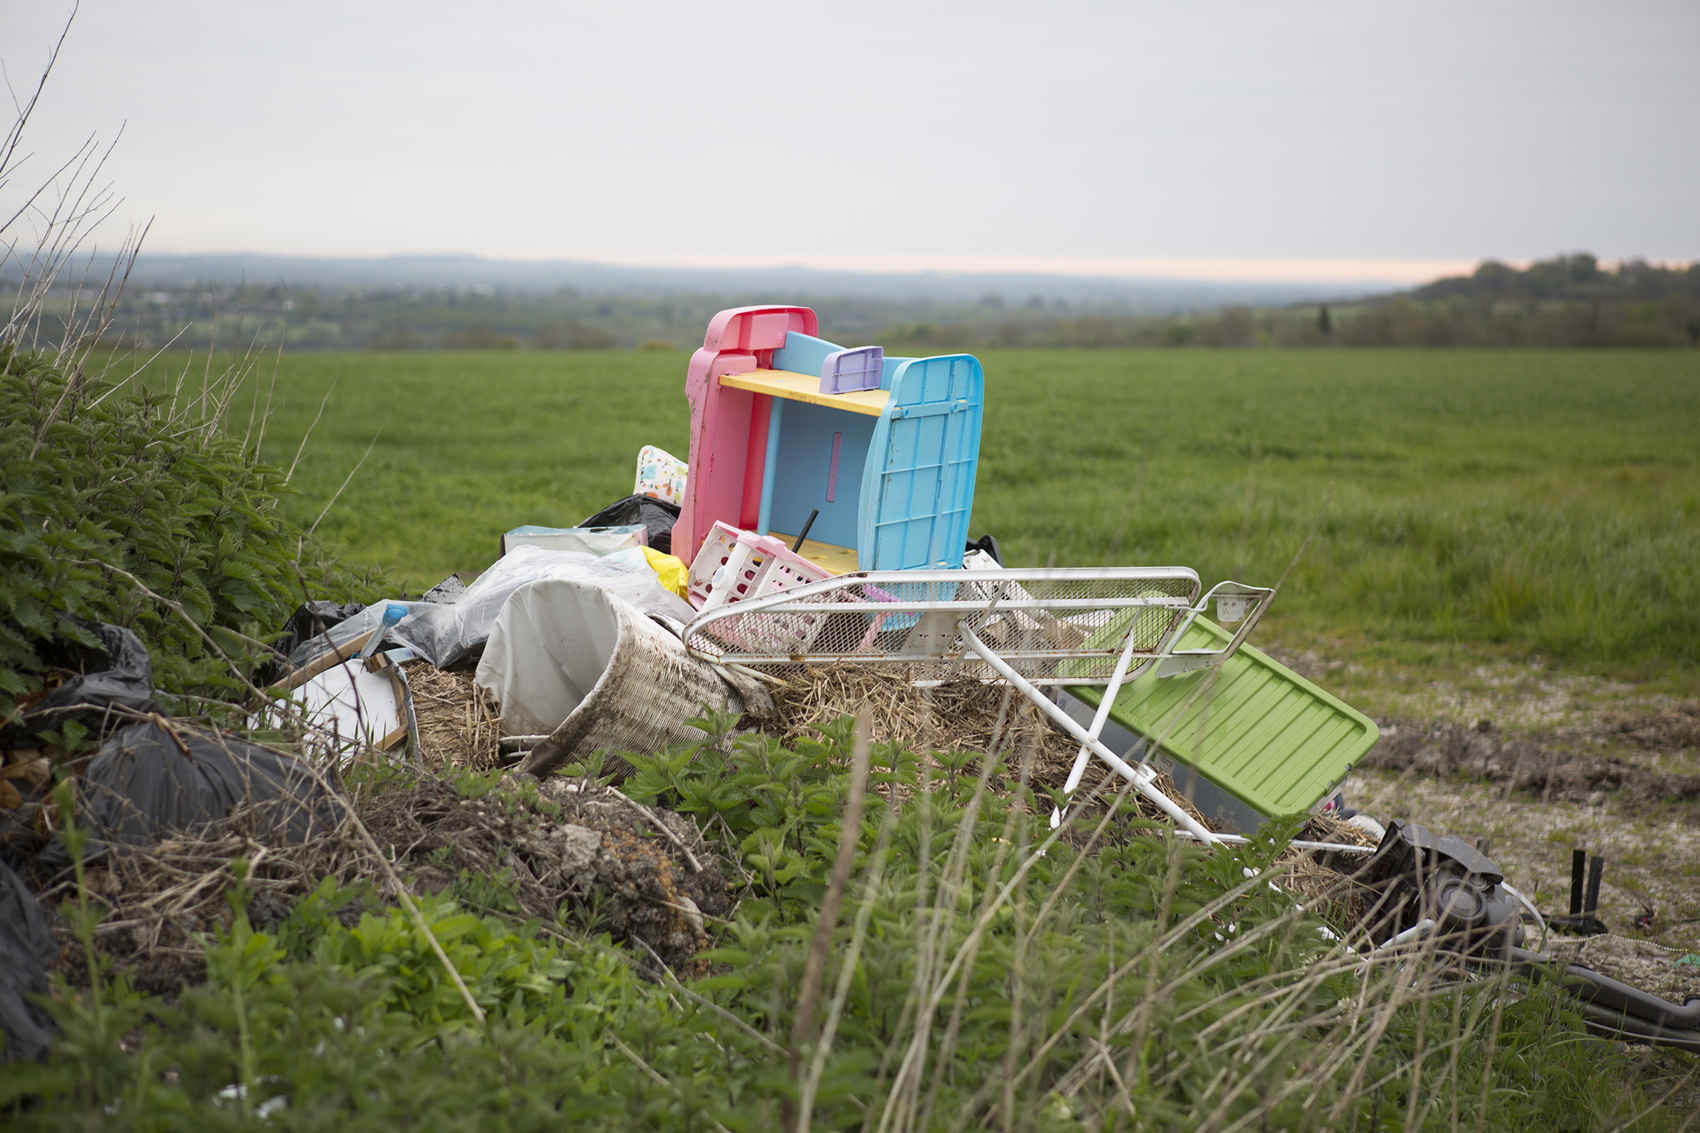 RISING STATS: The North-East has seen a huge increase in the number of fly-tipping incidences